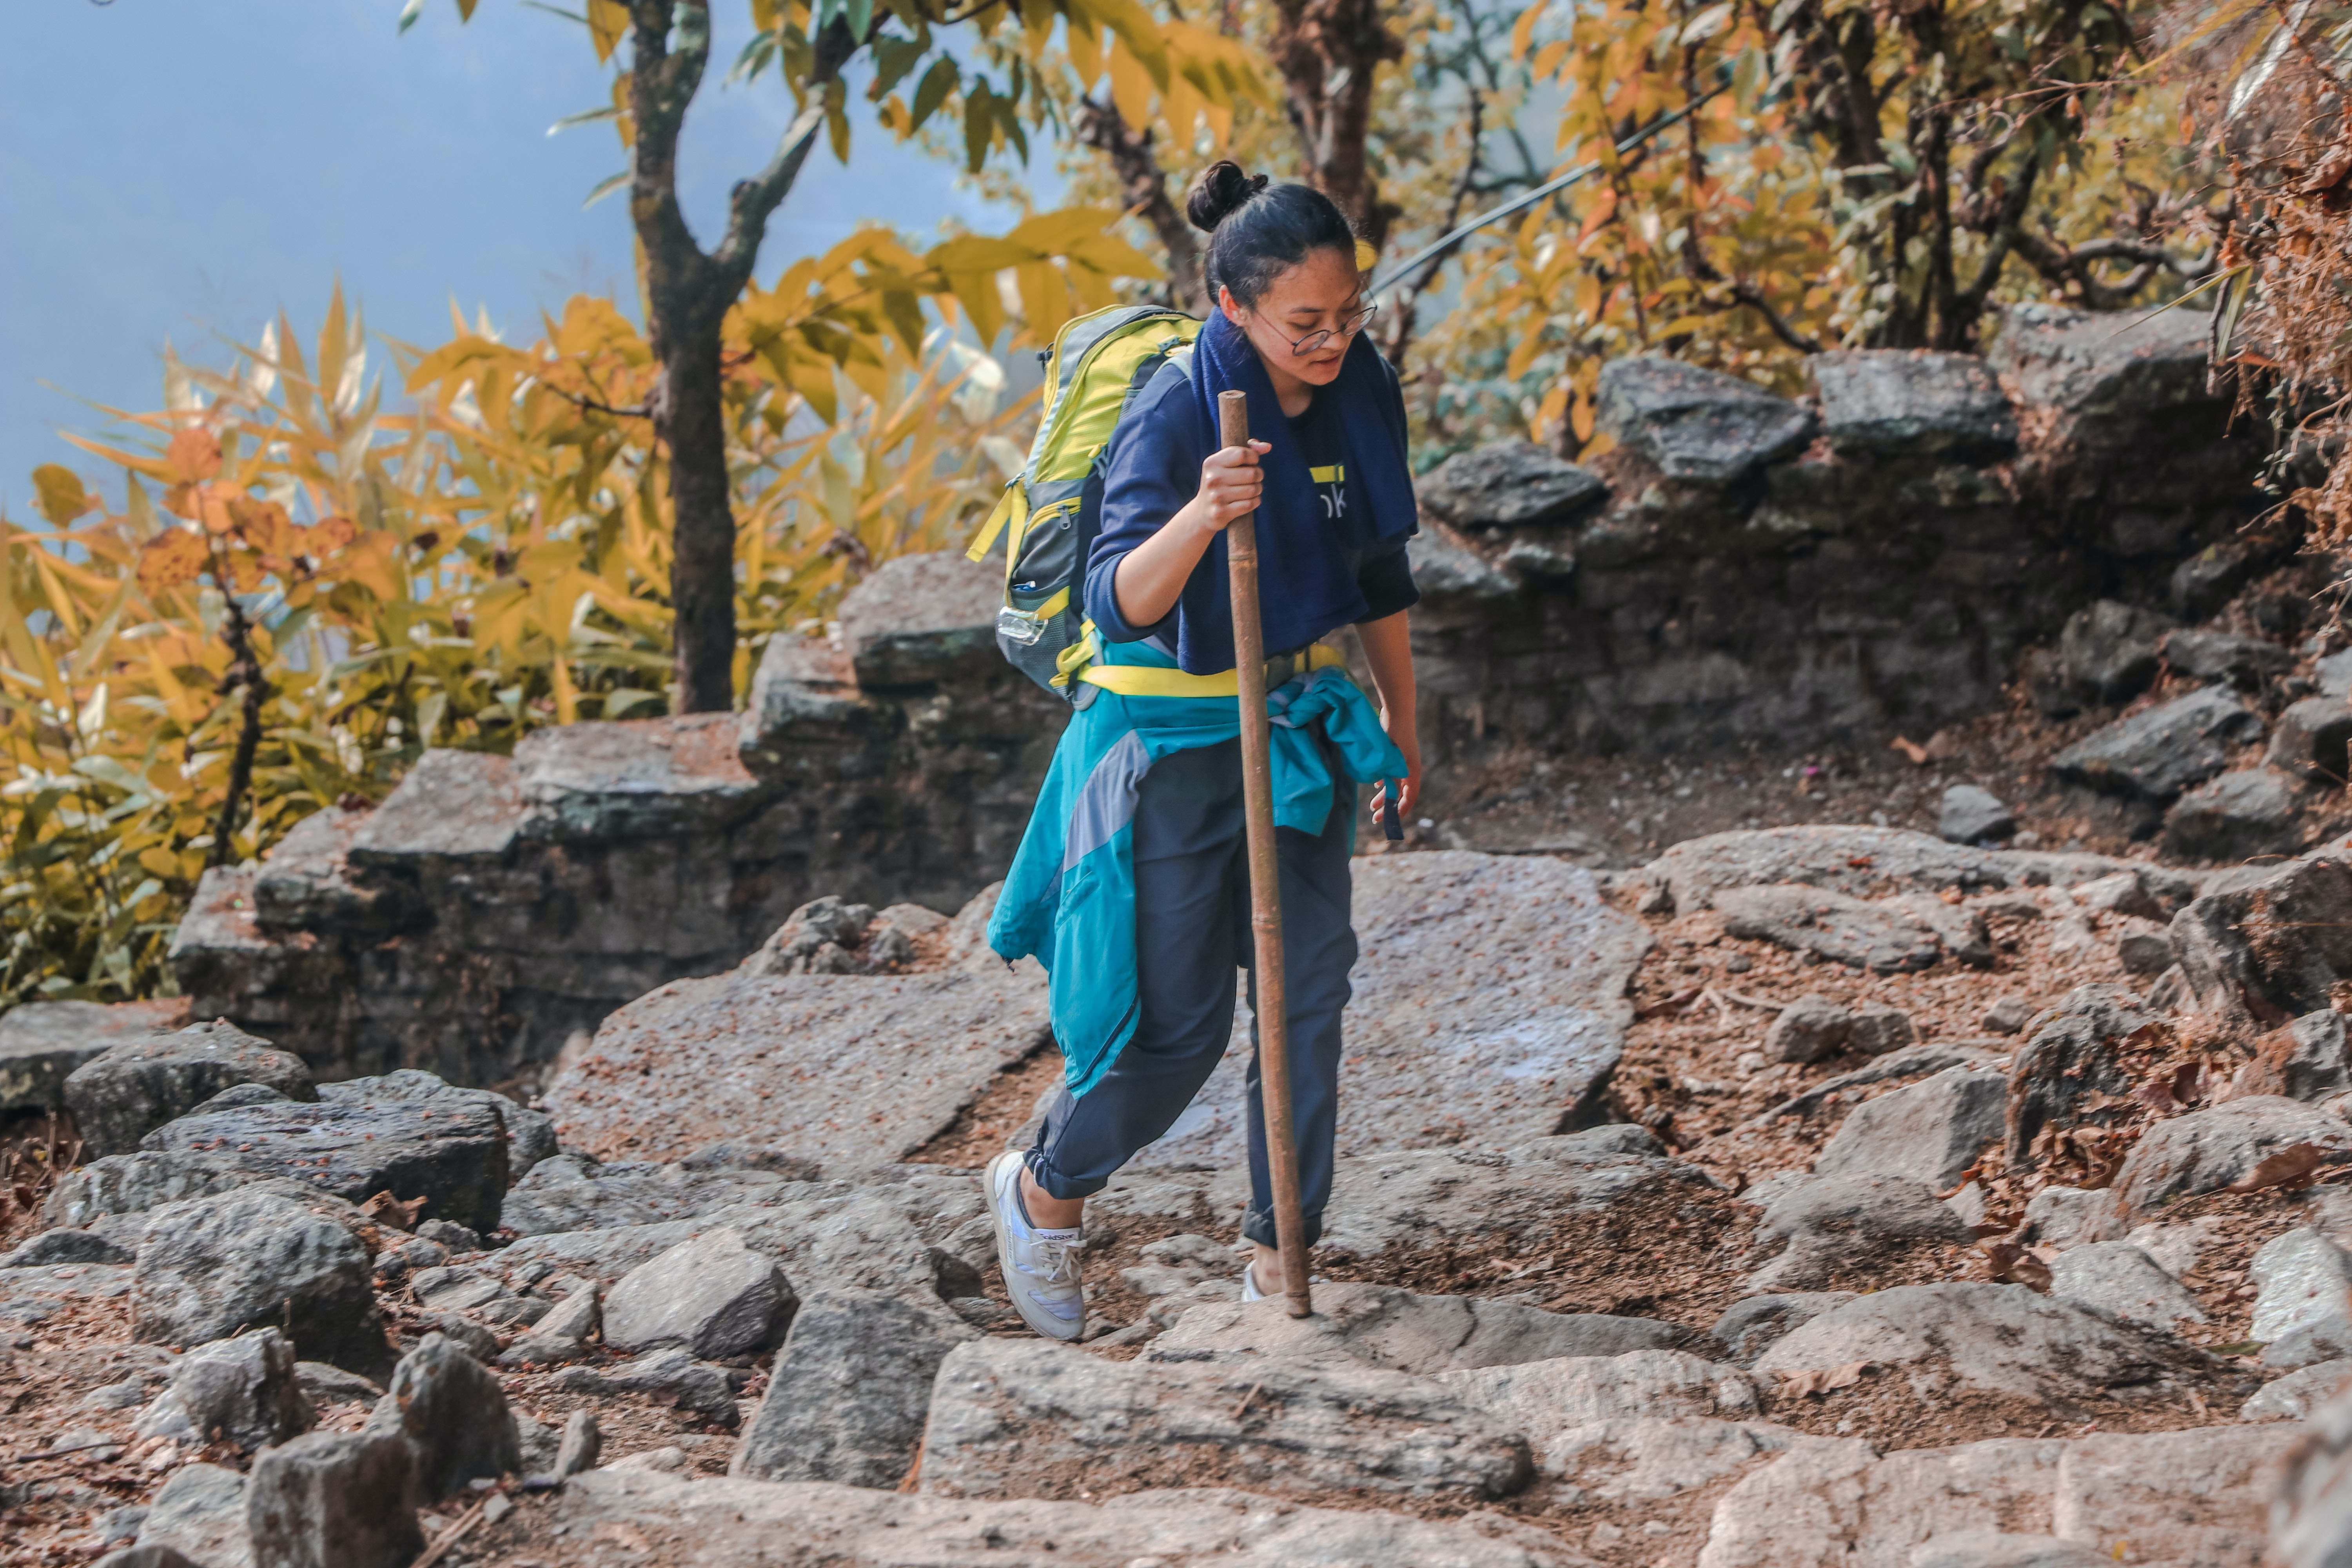 woman trekking on mountain carrying backpack and wooden stick